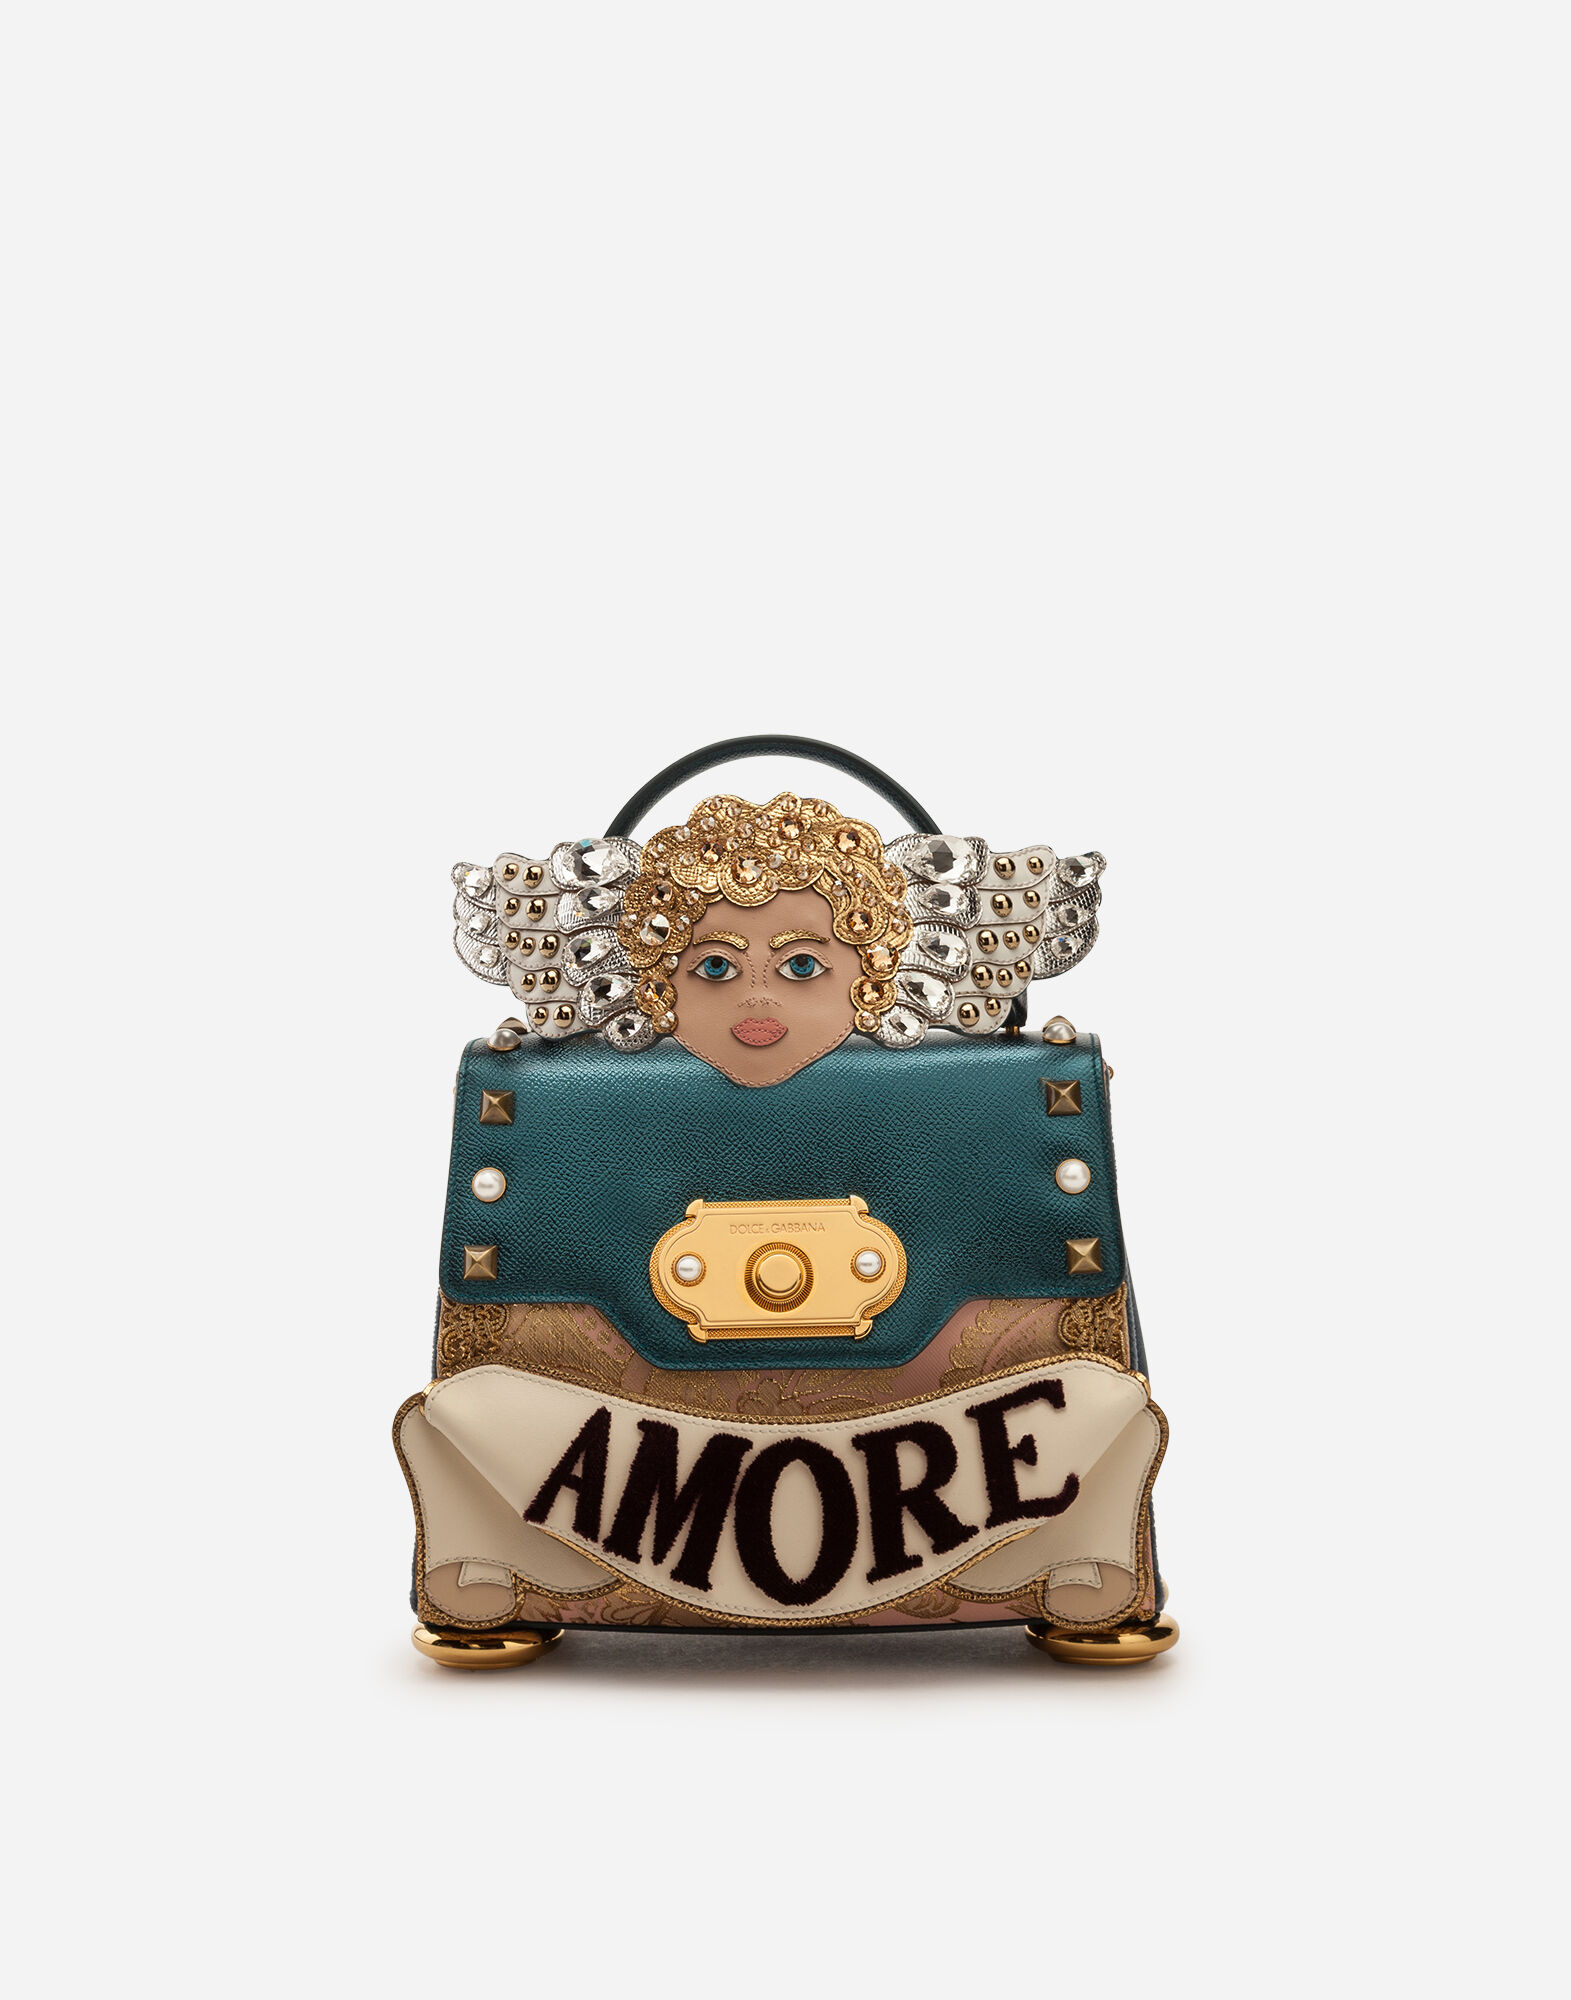 1f48915663 Dolce gabbana medium welcome handbag in a mix of materials with patch and  embroideries jpg 804x1024